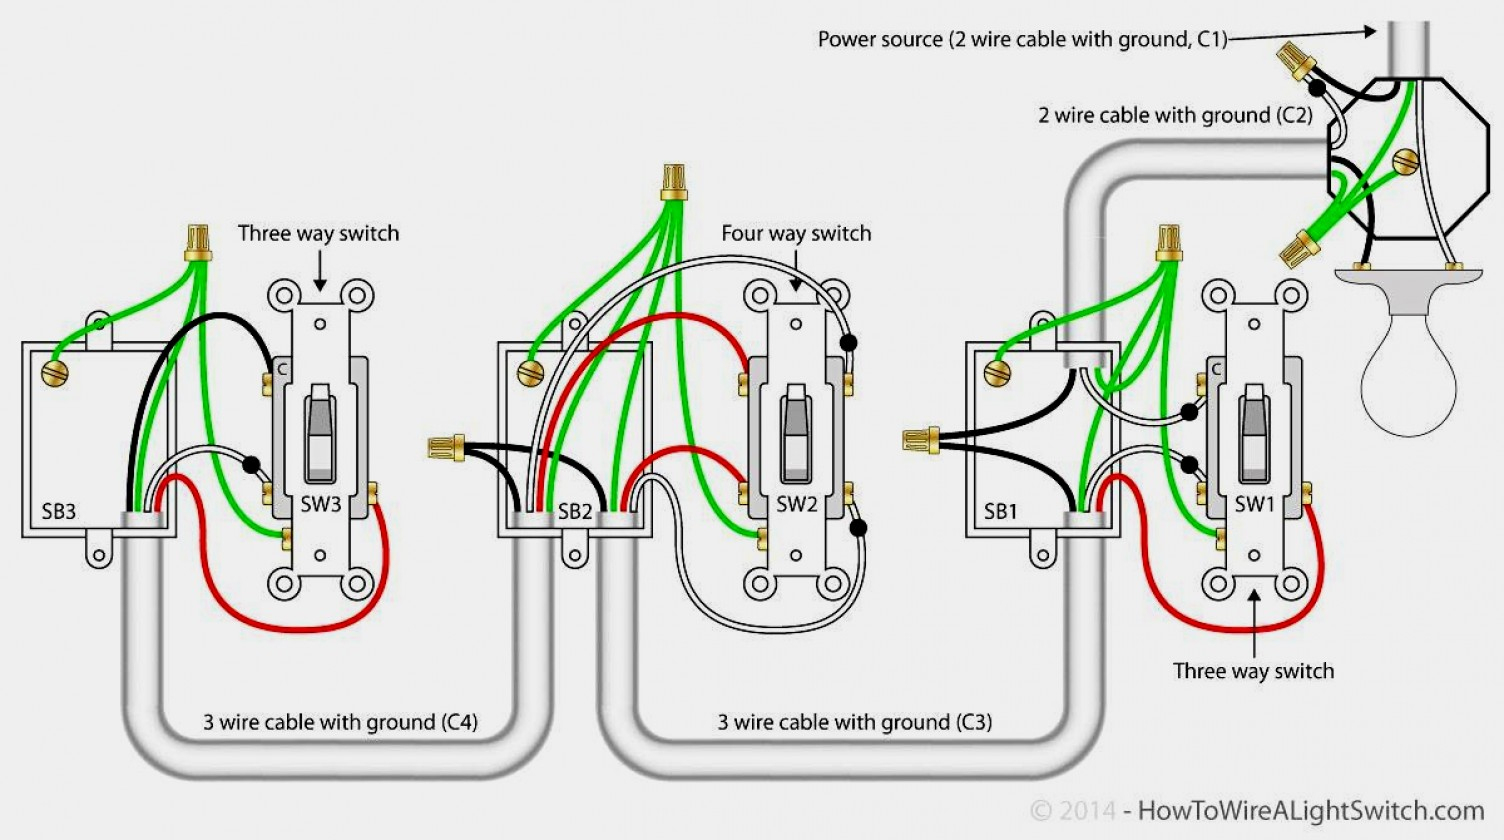 Lutron 4 Way Dimmer Wiring Diagram | Manual E-Books - 4 Way Wiring Diagram